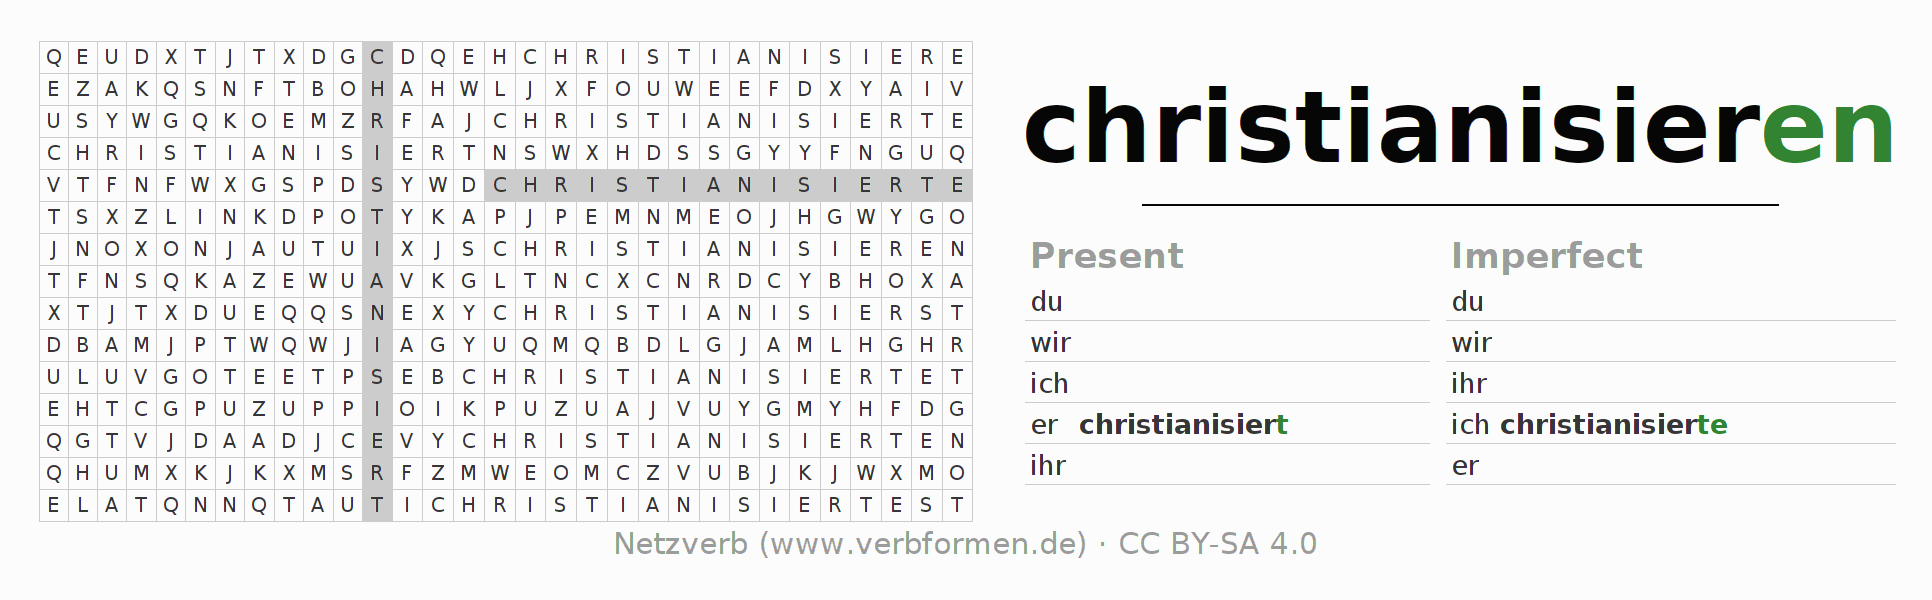 Word search puzzle for the conjugation of the verb christianisieren